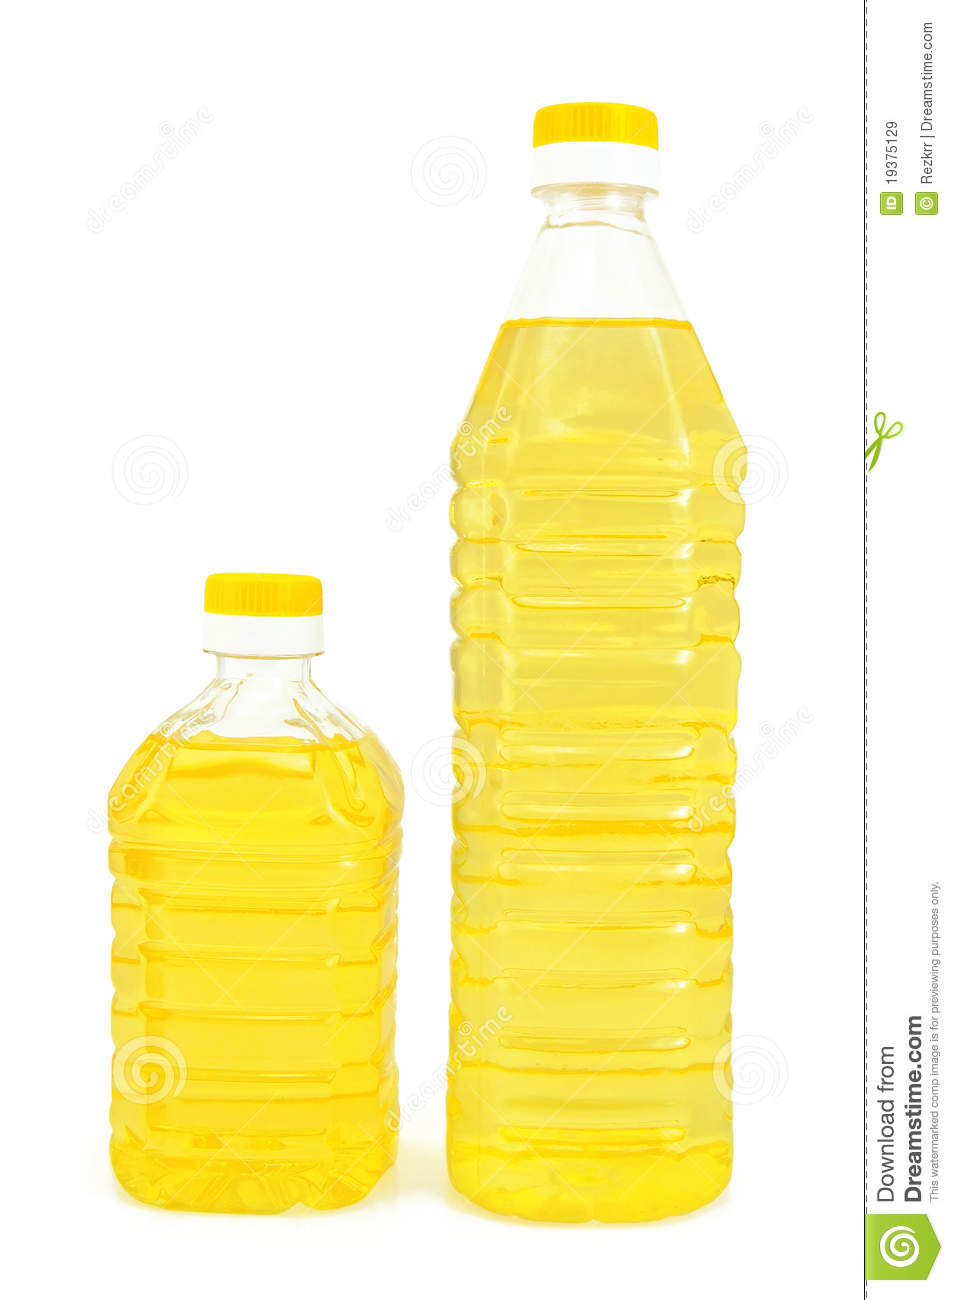 Vegetable Oil Clipart Vegetable Oil In Two Bottles